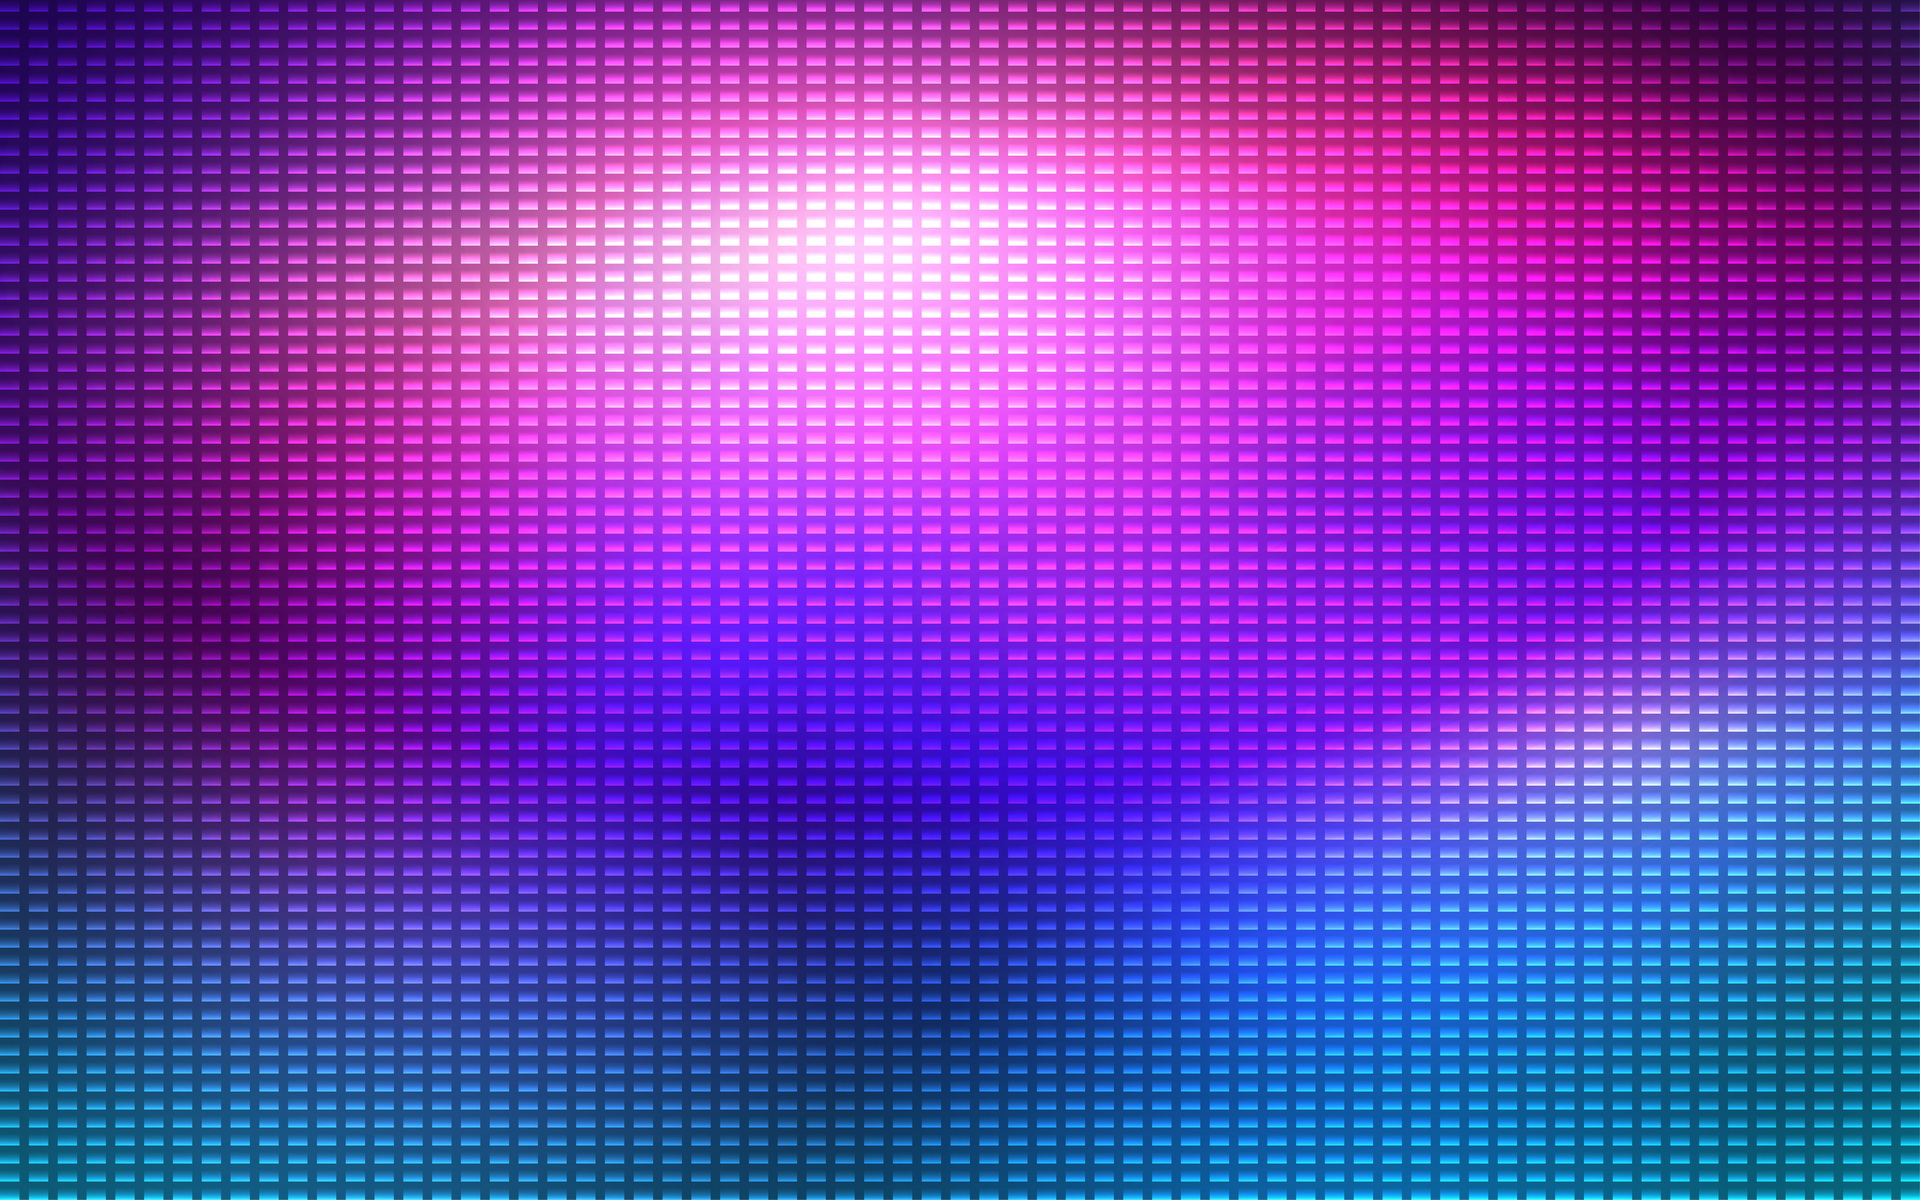 Purple And Turquoise Wallpaper: Pattern HD Wallpaper